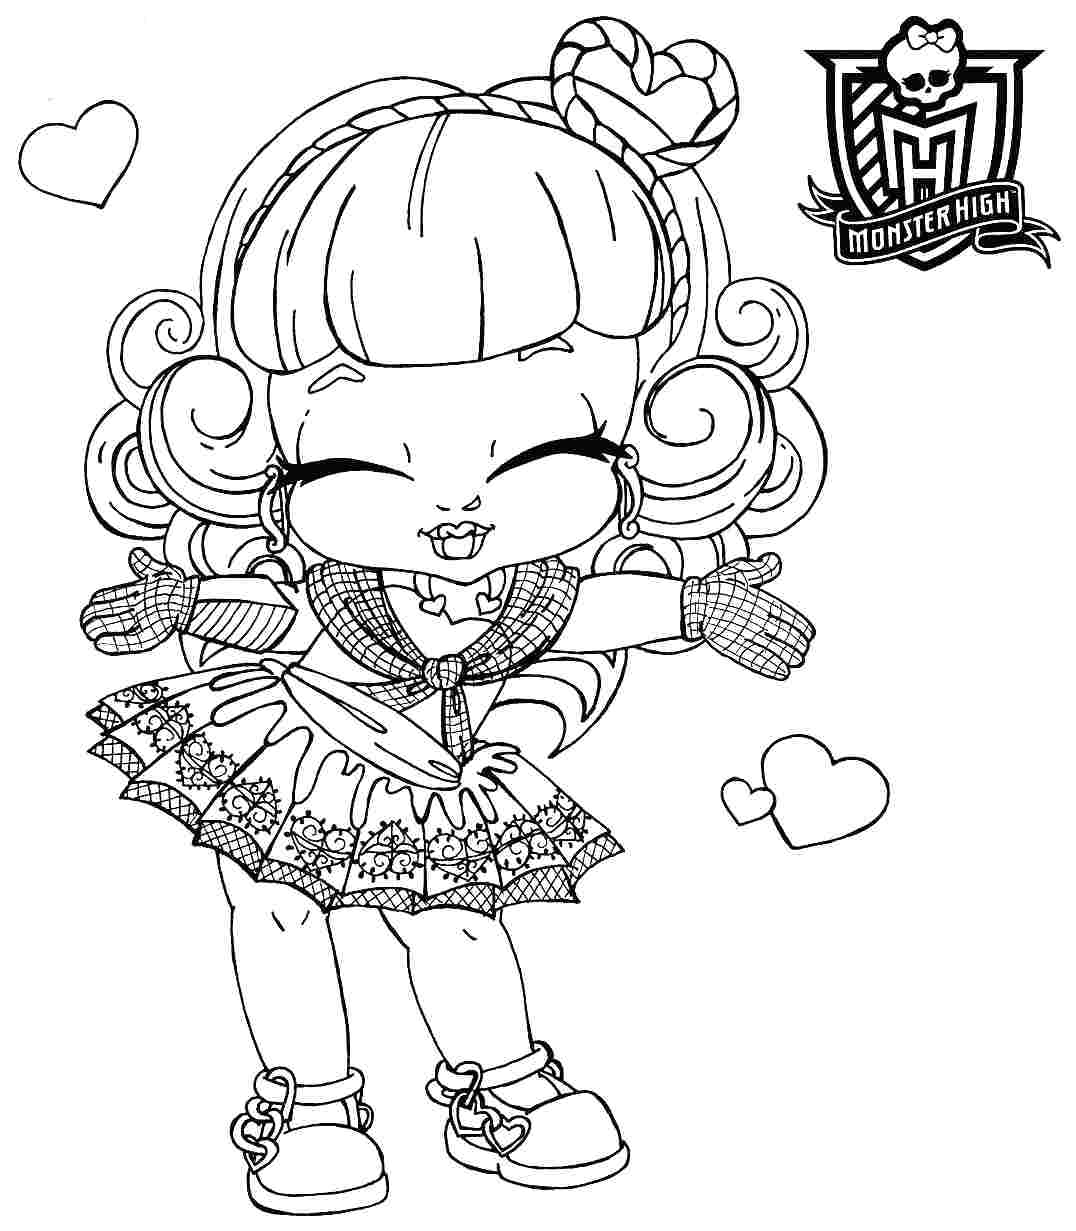 Monster High Baby Coloring Pages 012 to Coloring Pages Collection Of Monster High Coloring Pages Monster High Coloring Page All Collection